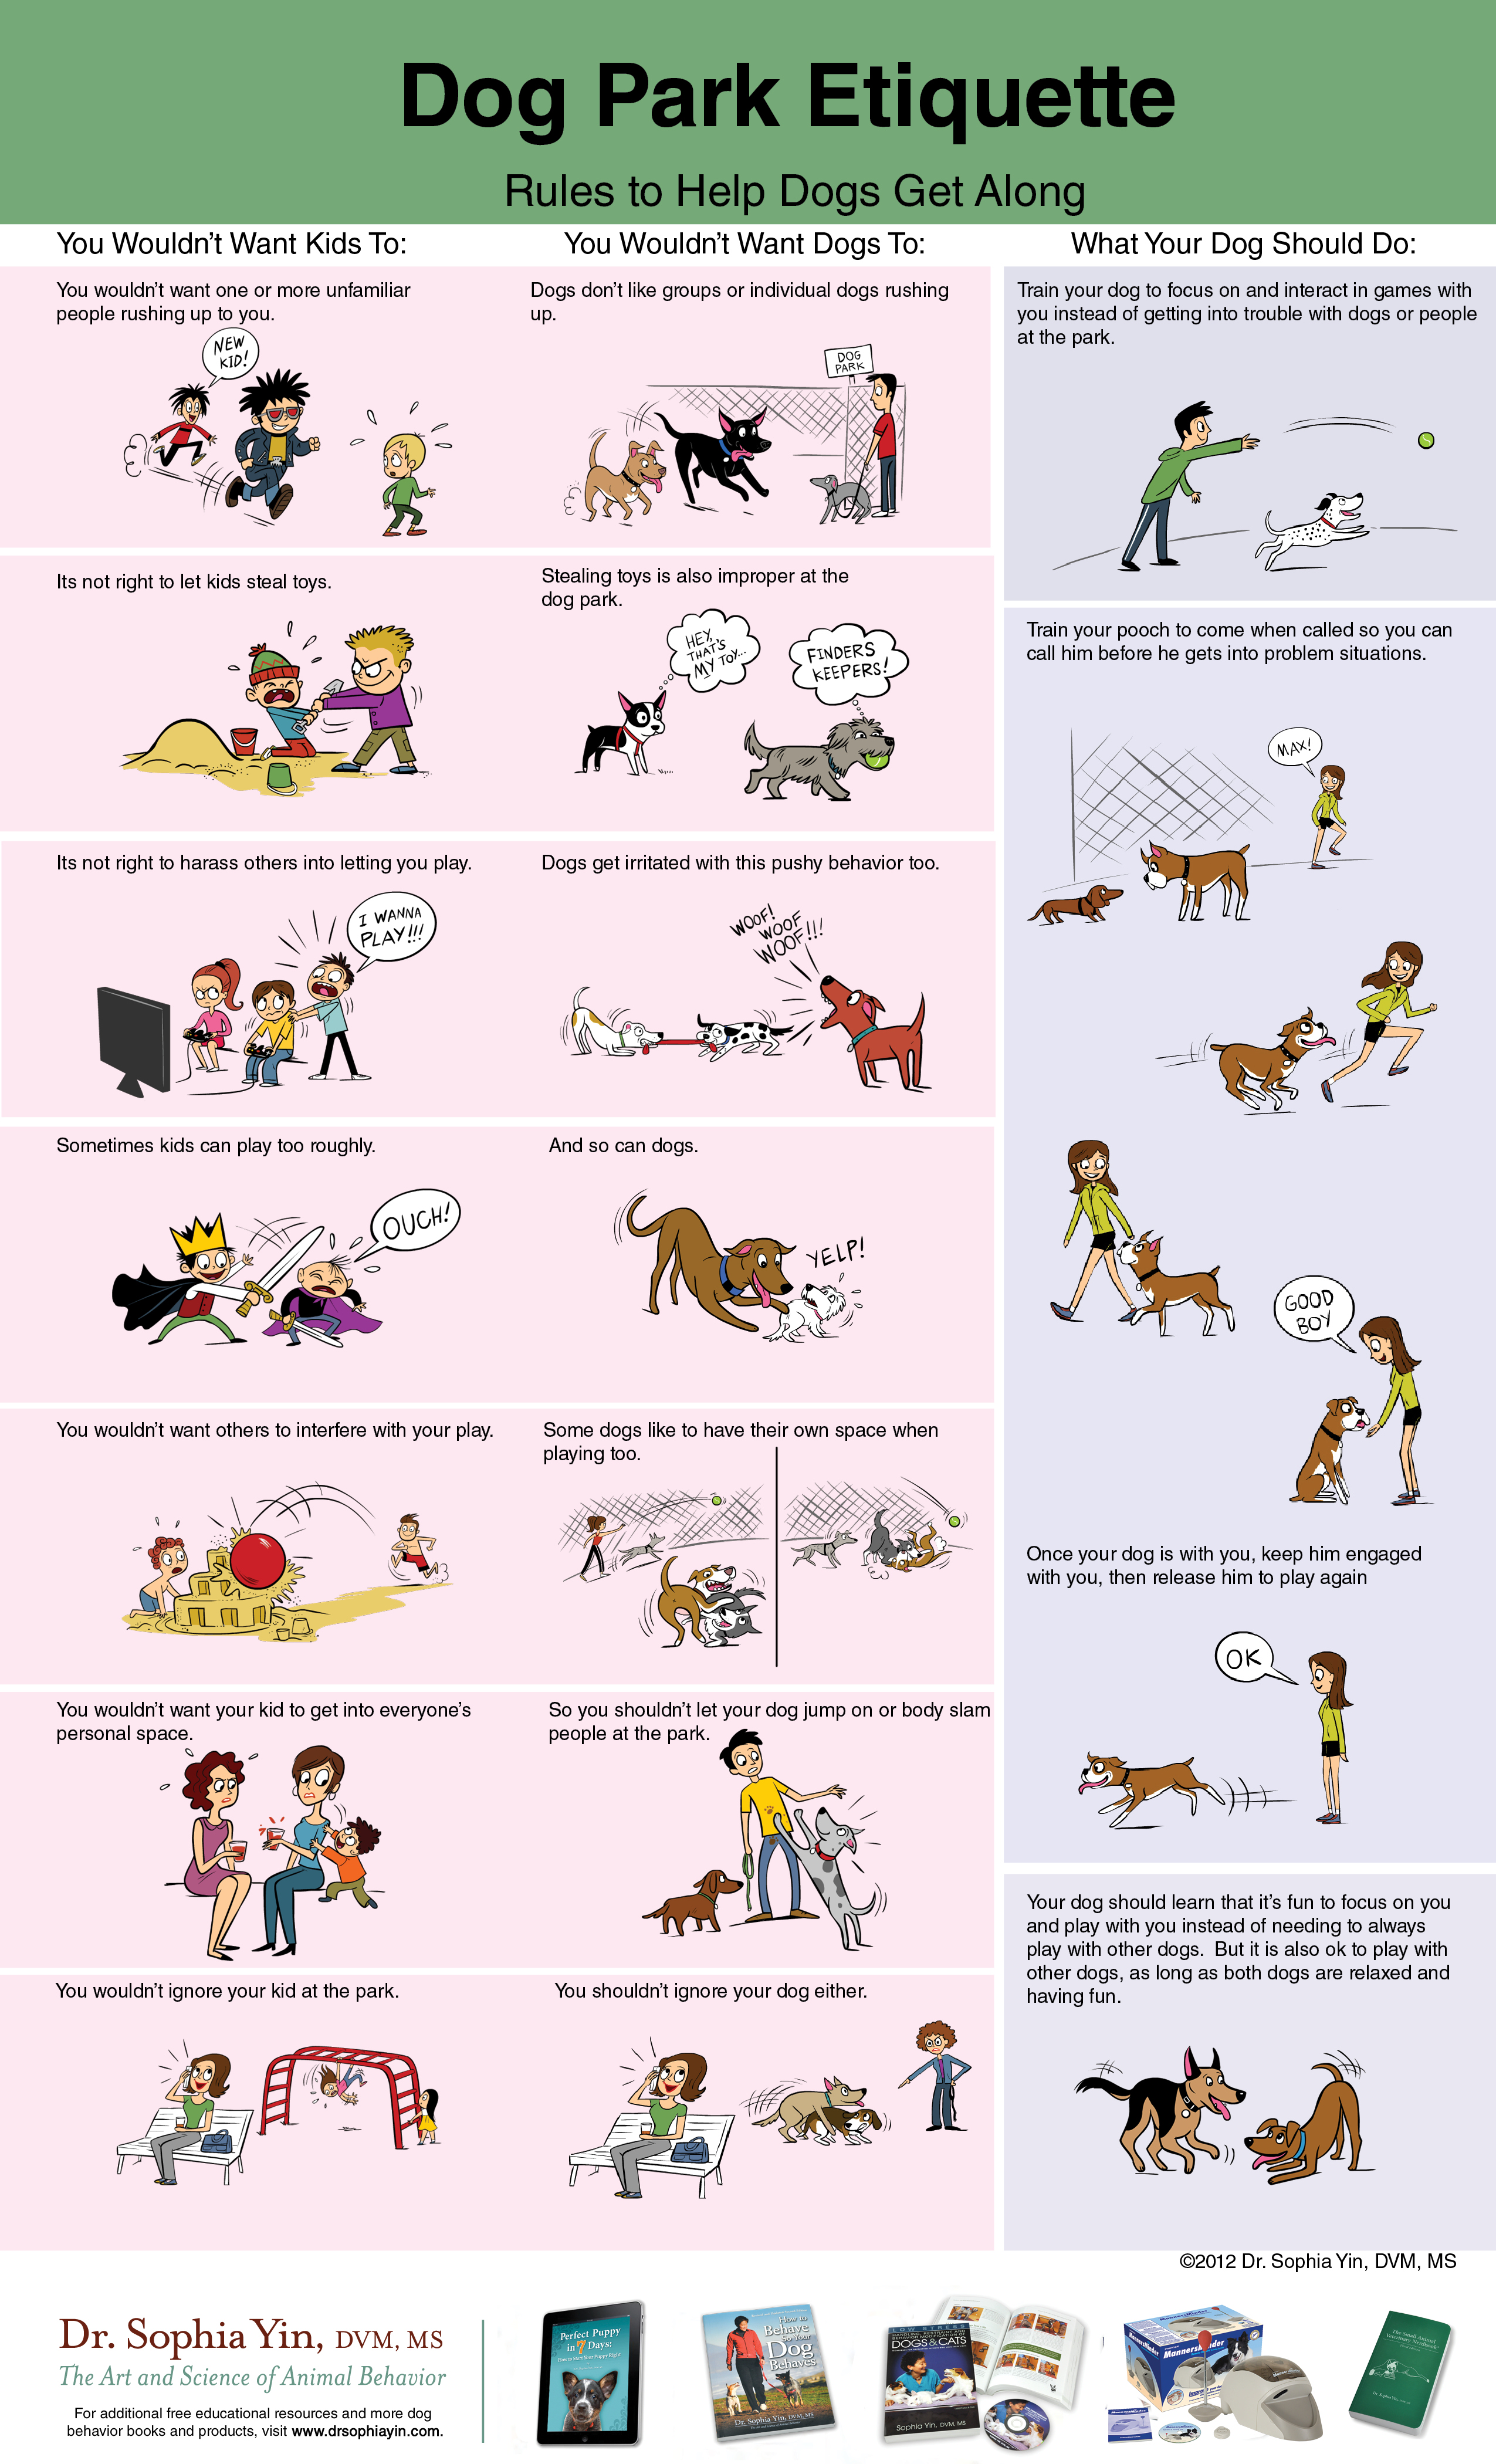 Dog Park Etiquette Rules to Help Dogs Get Along